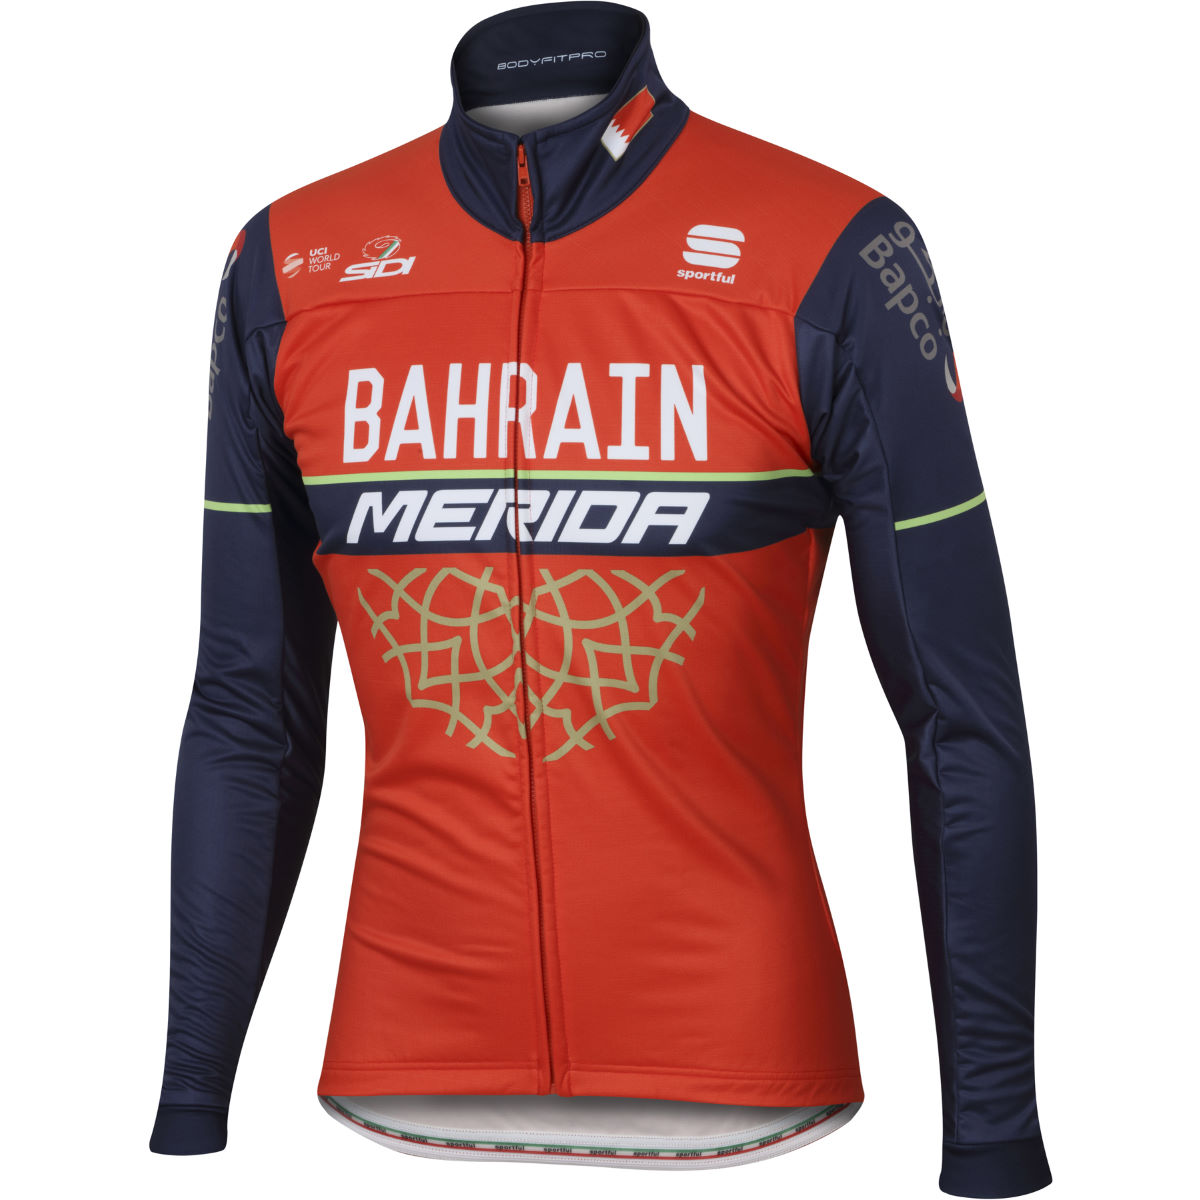 Veste Sportful Bahrain-Merida BodyFit Partial Protection - M Vestes